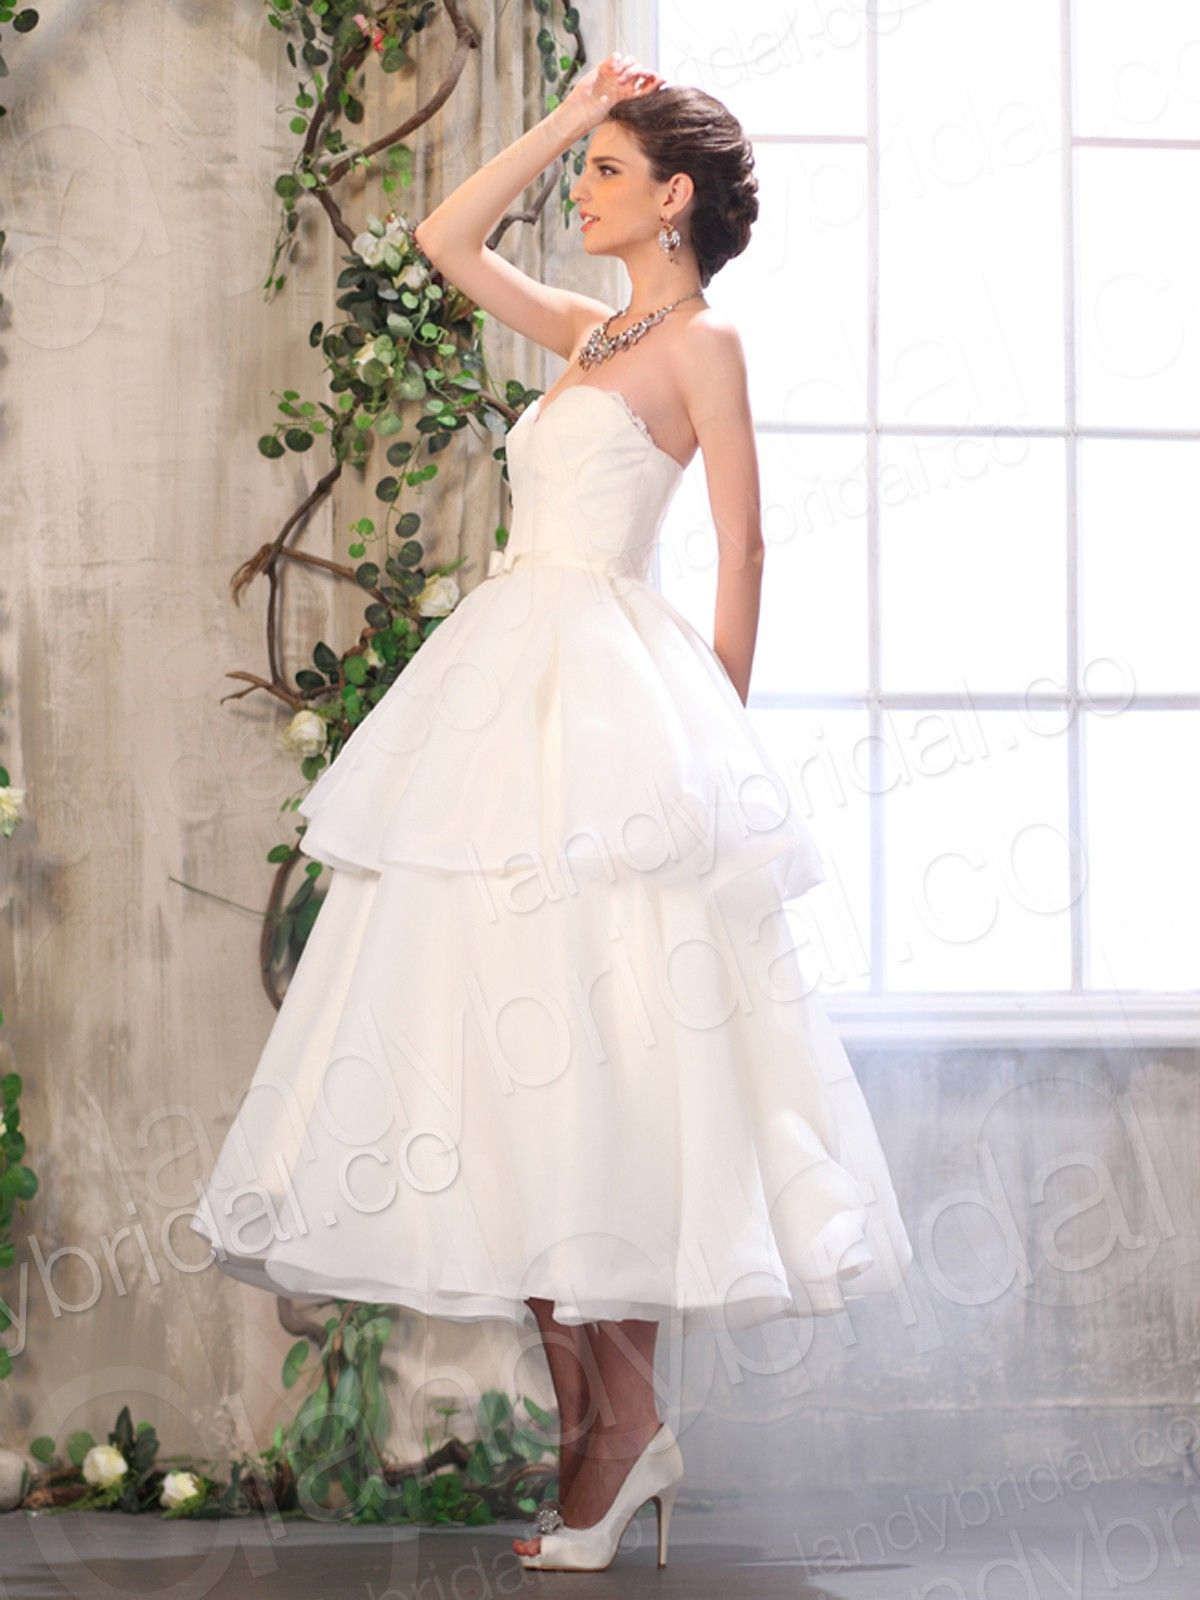 Wedding dress ankle length weddingbridesmaid dressesshoes